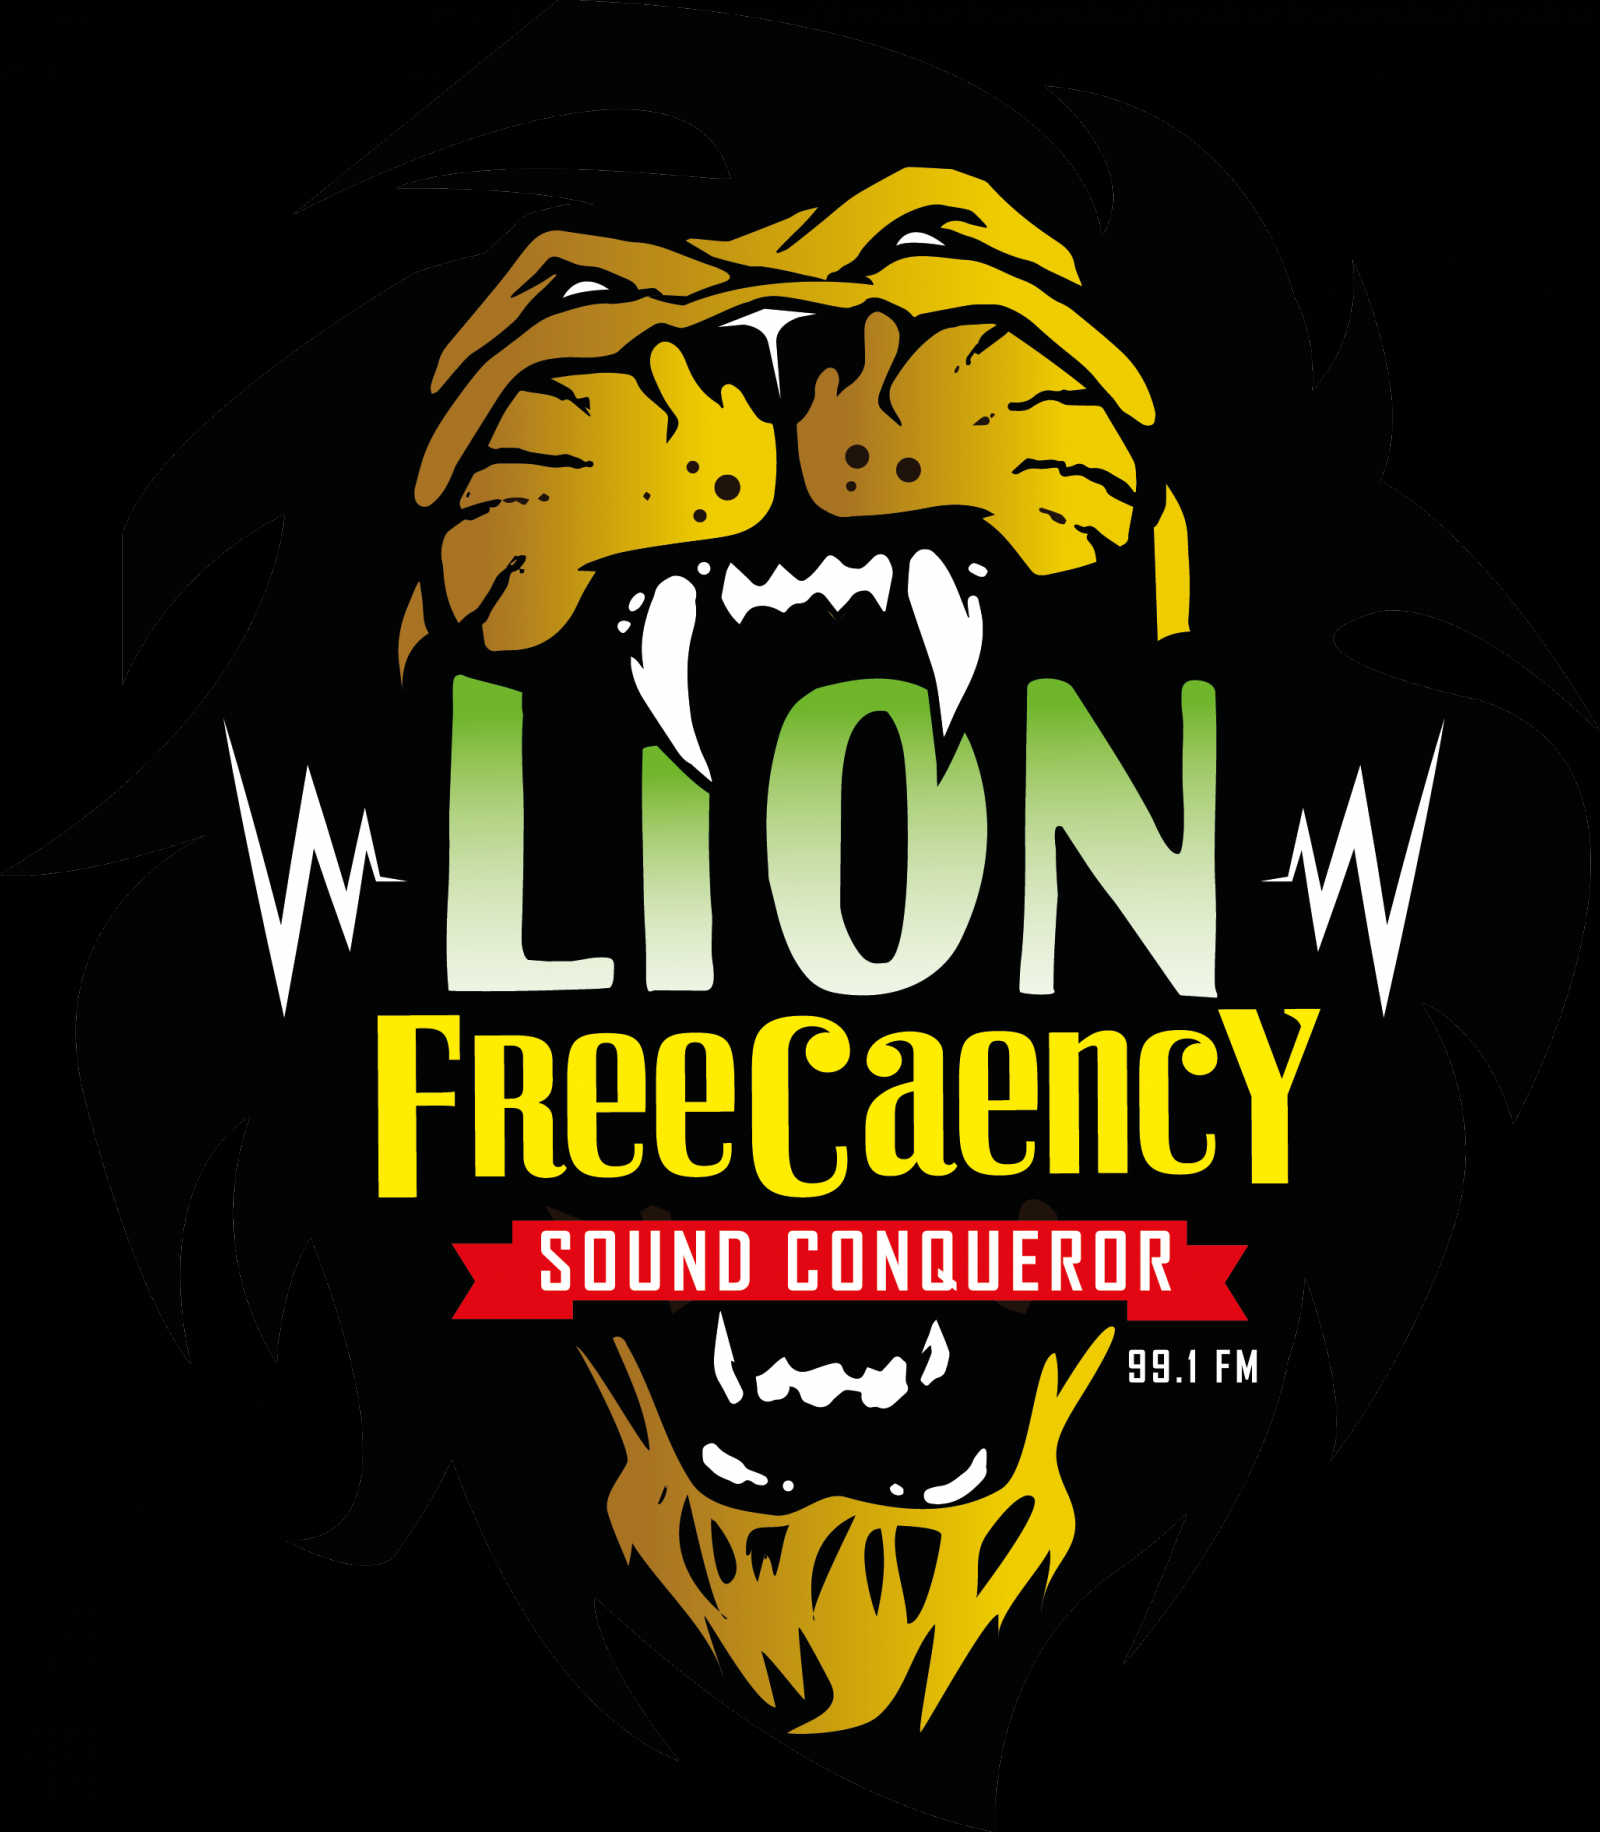 lion freecaency artiste musique son dub reggae france basse normandie. Black Bedroom Furniture Sets. Home Design Ideas